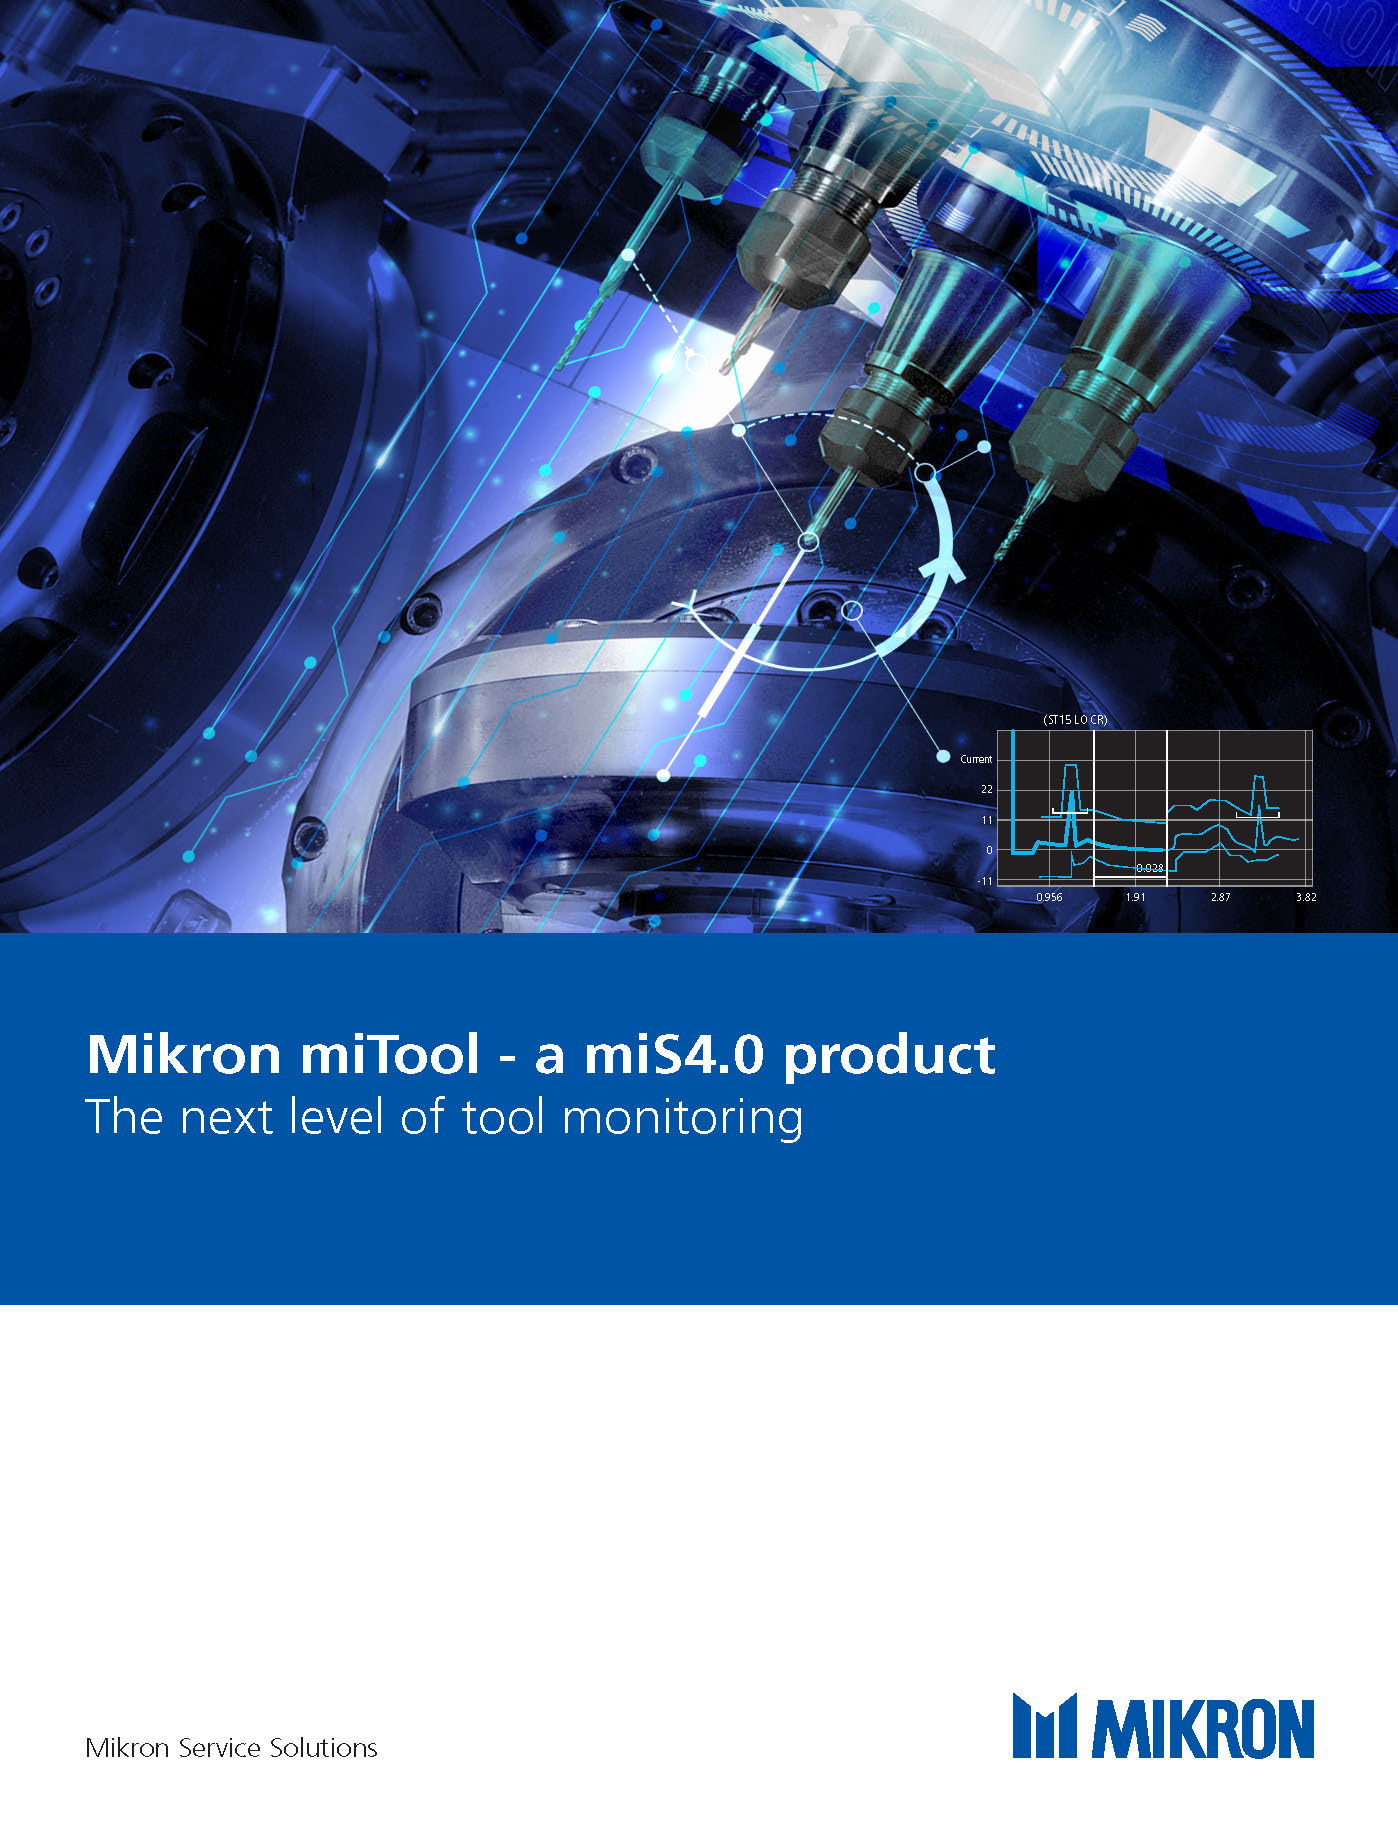 fileadmin/user_upload/Predictive_Service_Solutions_Mikron_miTool__ENG_Seite_1.jpg